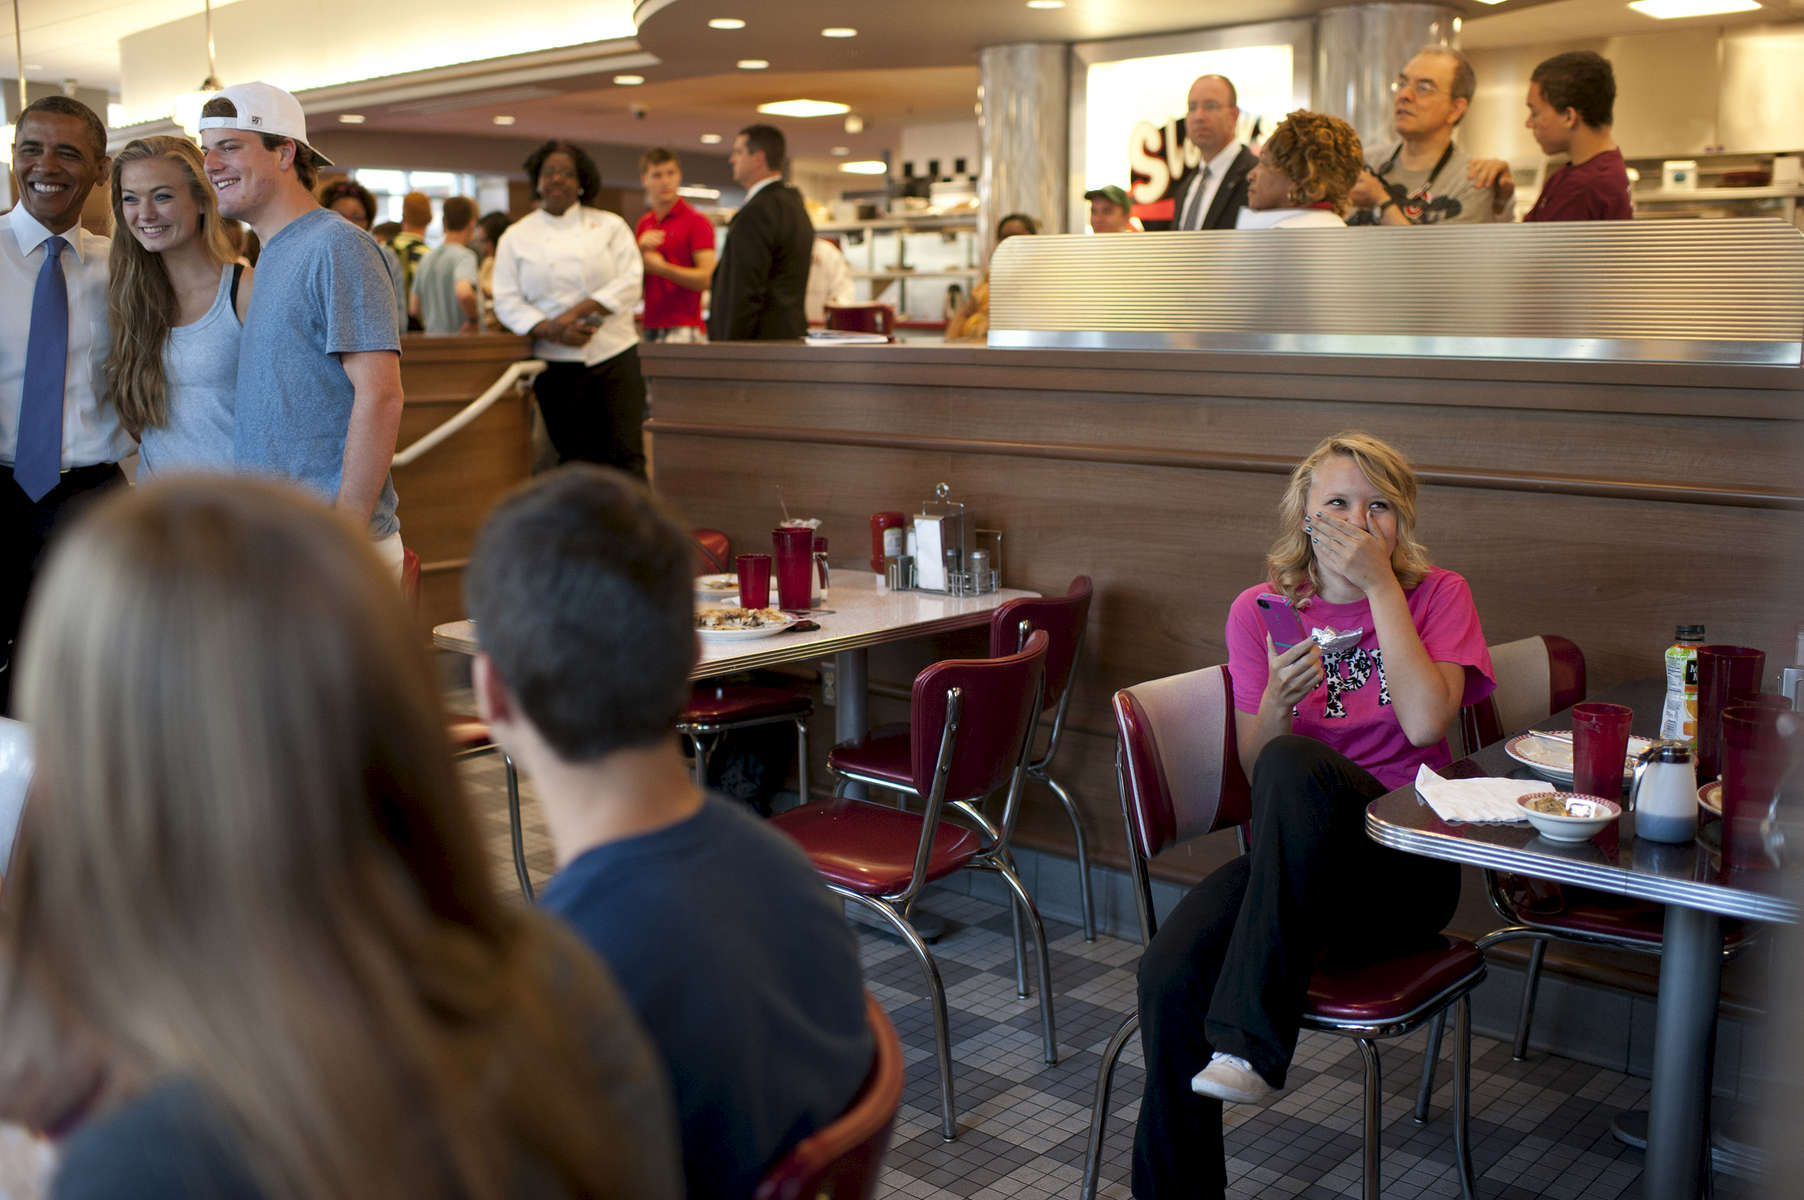 August 21, 2012 - COLUMBUS, OH:  A student reacts as she sees President Barack Obama during his visit to Sloopy's Diner in Columbus, OH. (Scout Tufankjian for Obama for America/Polaris)